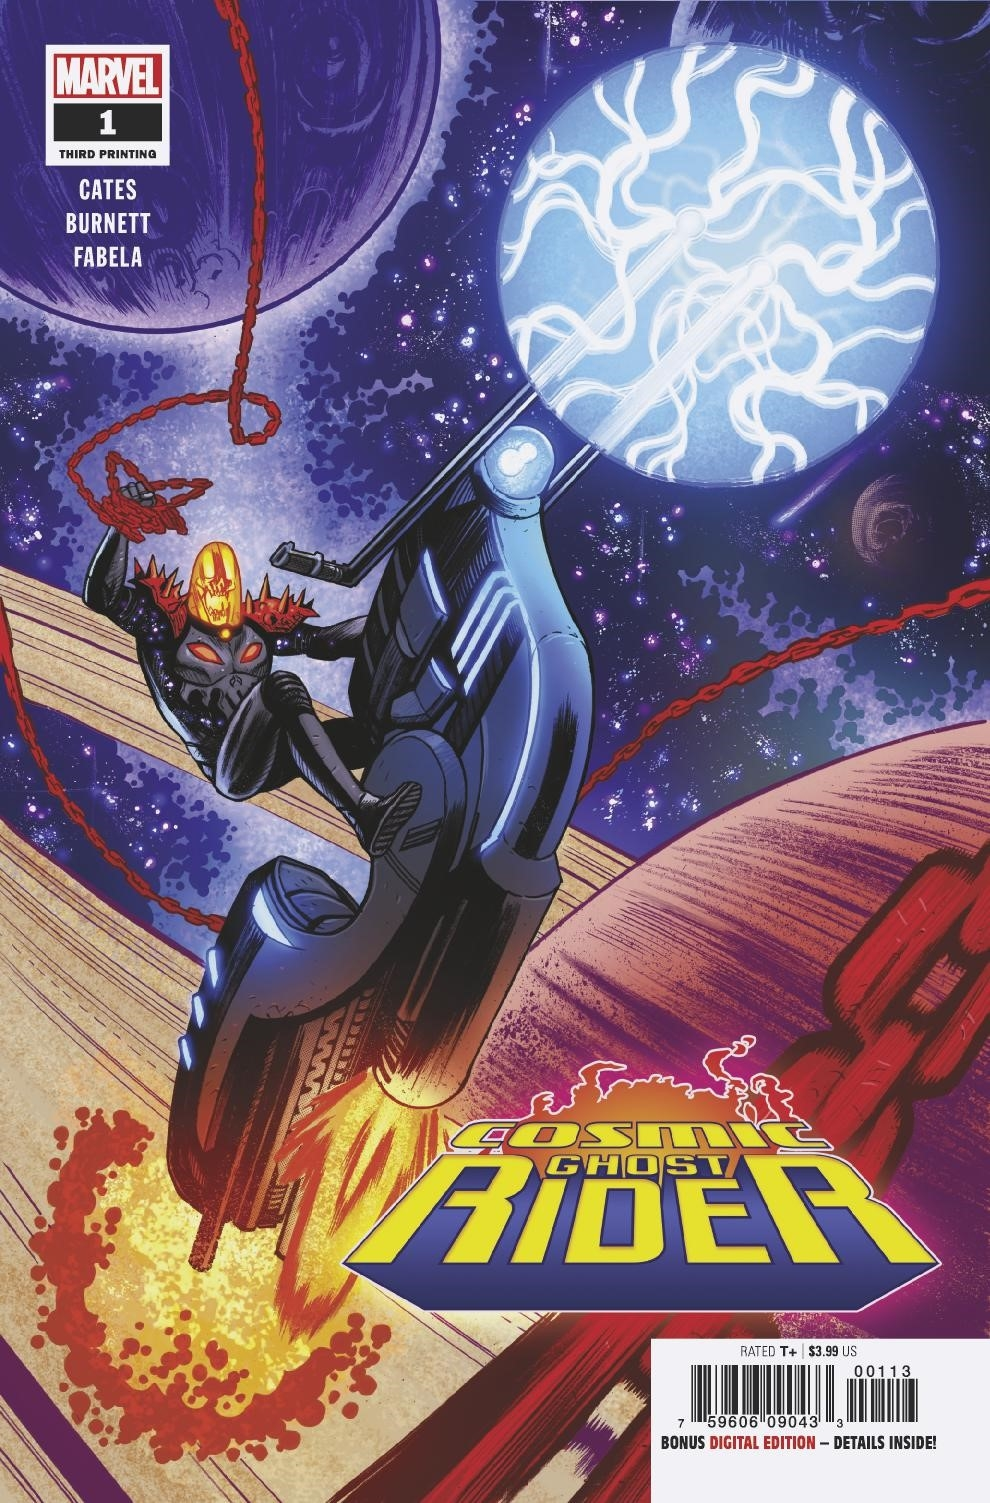 COSMIC GHOST RIDER #1 (OF 5) 3RD PTG BURNETT VAR